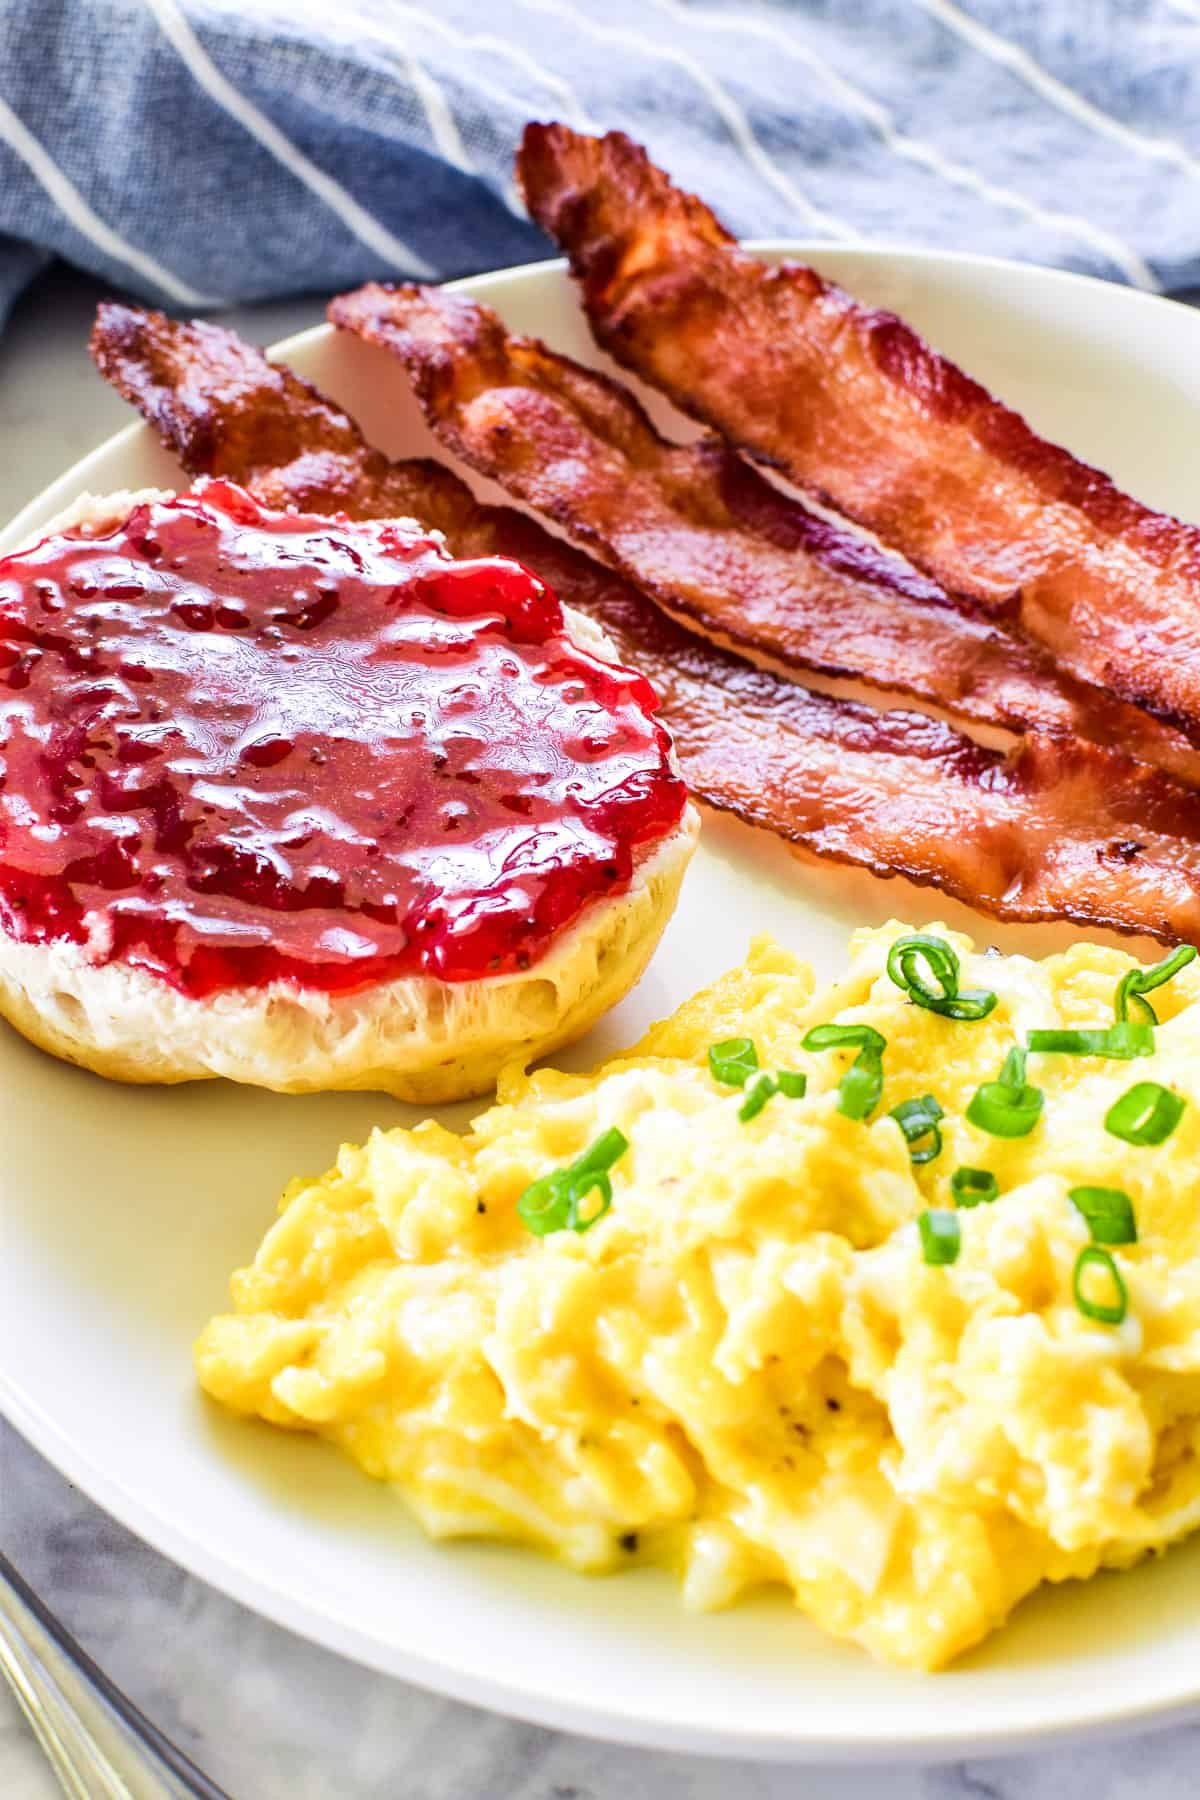 Scrambled eggs, bacon, and a biscuit with jam on a white plate